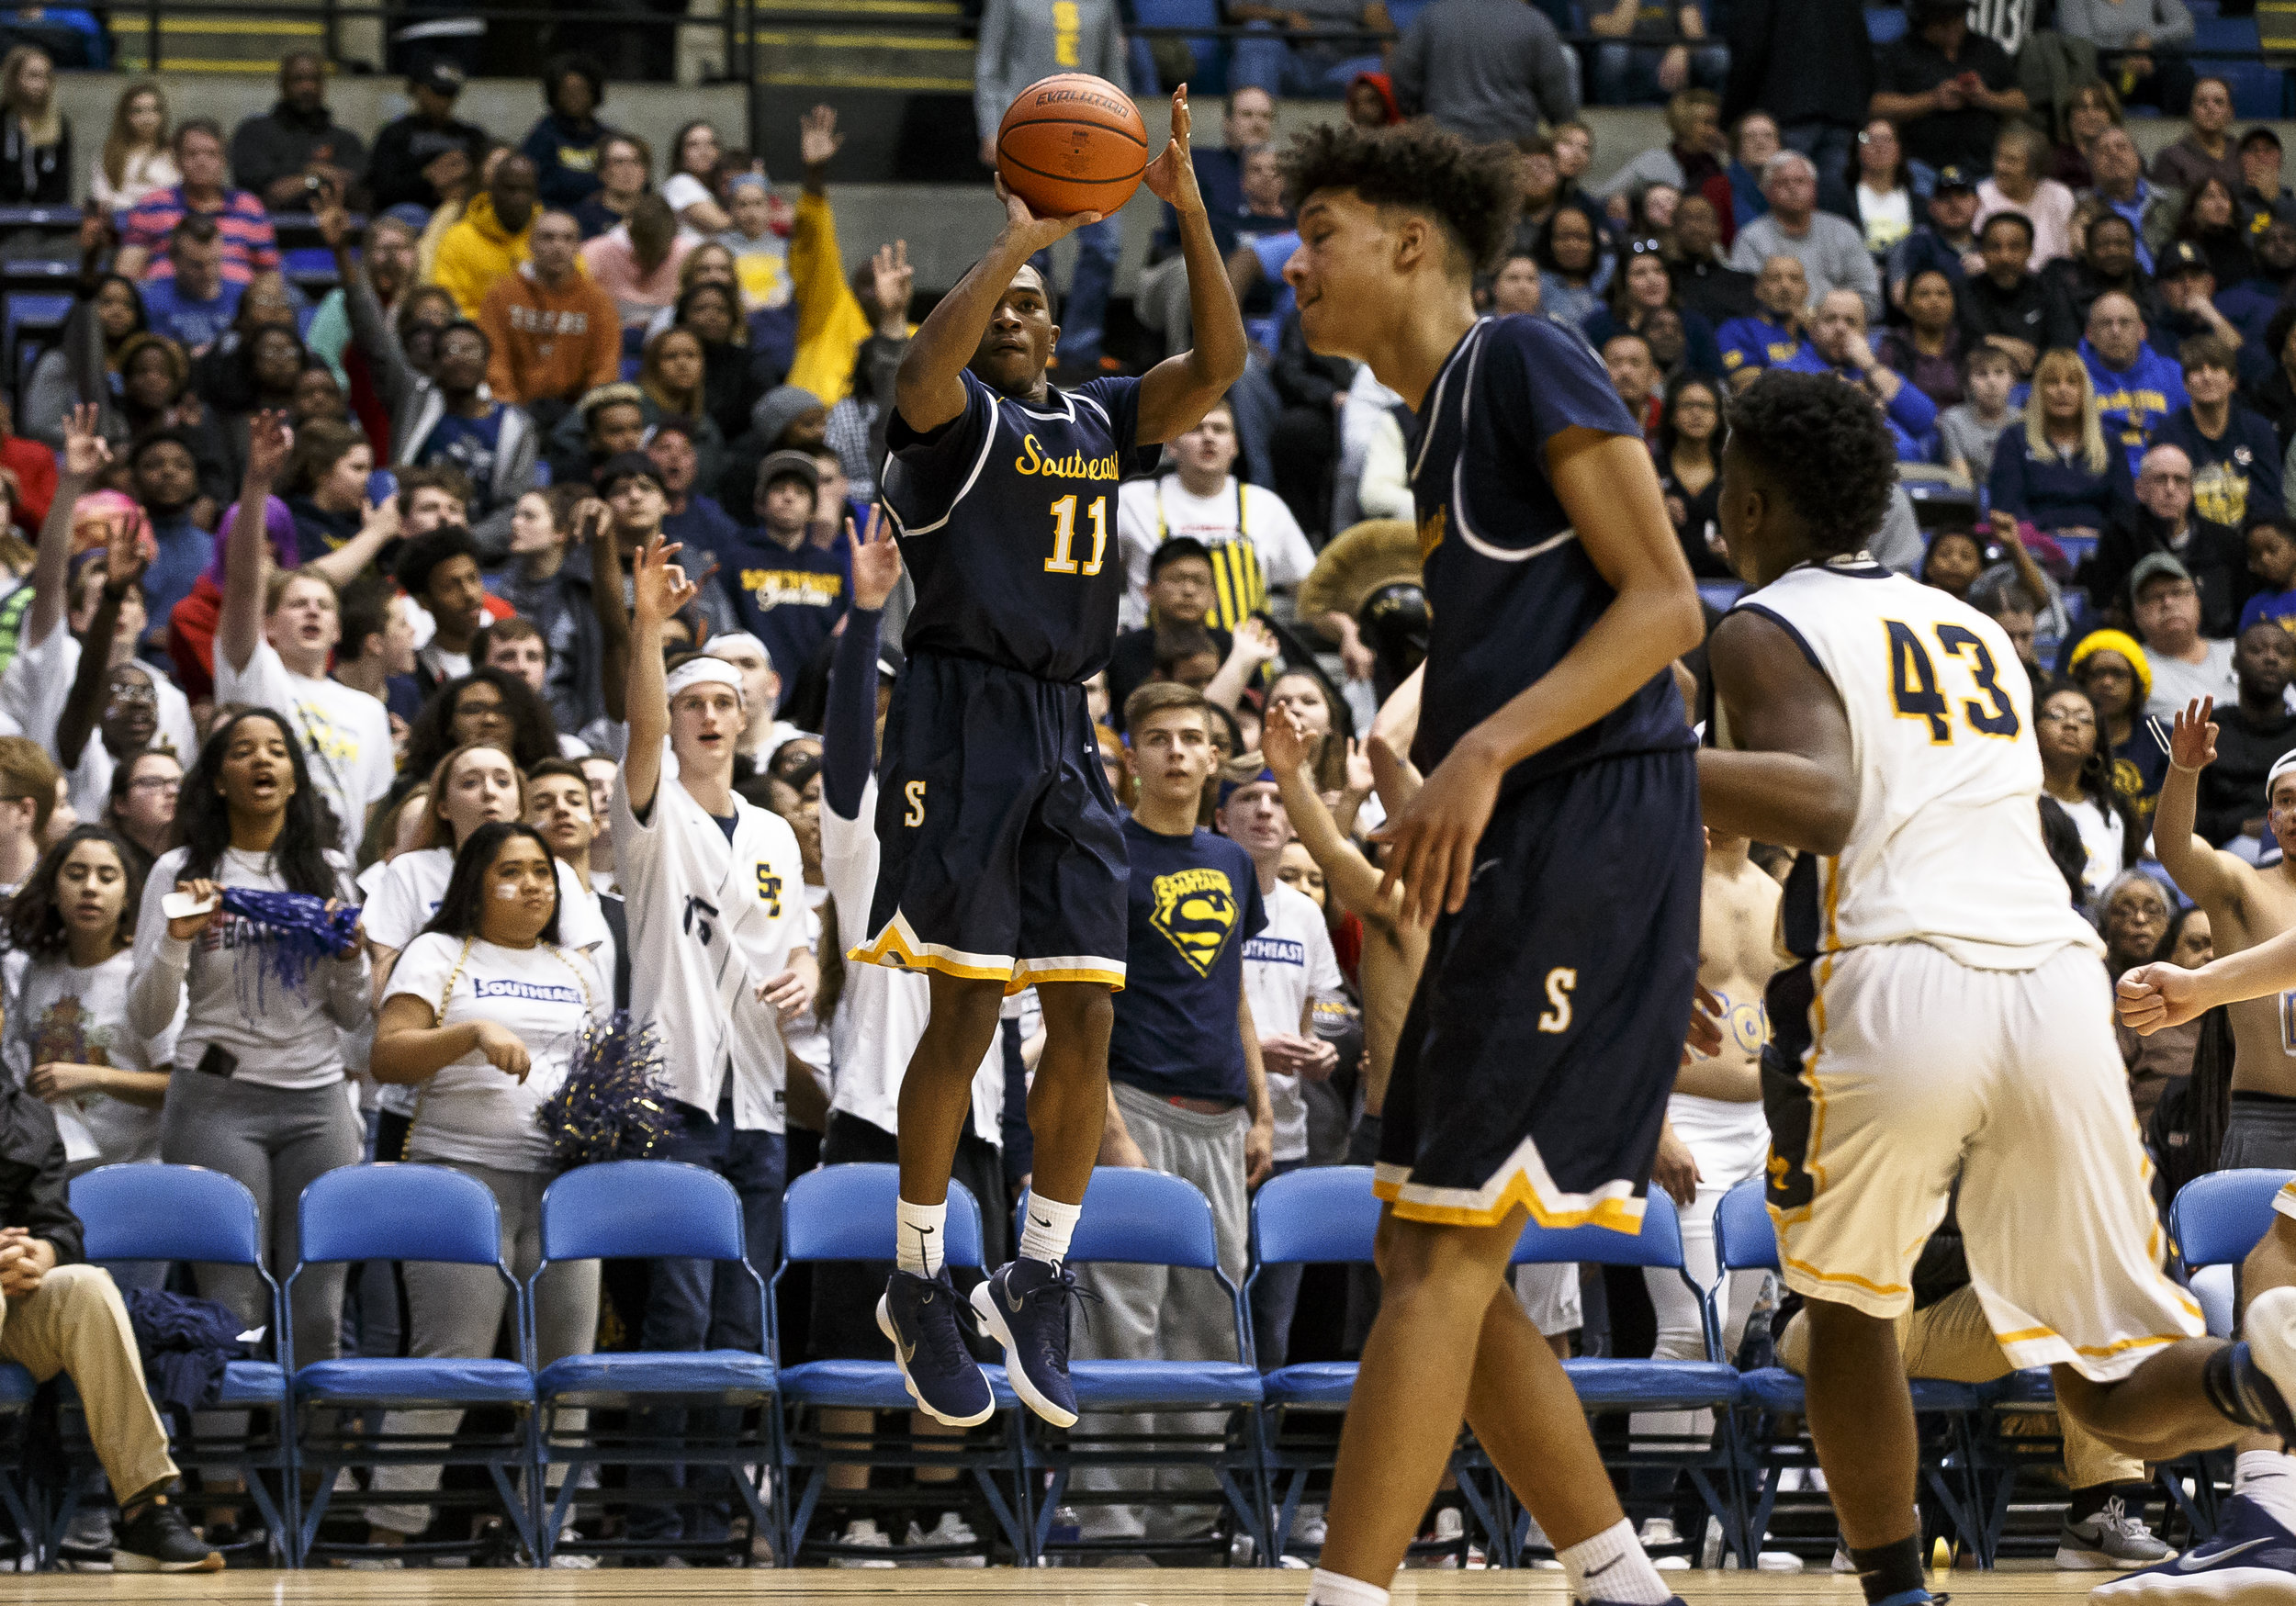 Southeast's Kobe Medley (11) shoots a 3-pointer against Marion in the second half during the Class 3A Springfield Supersectional at the Bank of Springfield Center, Tuesday, March 13, 2018, in Springfield, Ill. [Justin L. Fowler/The State Journal-Register]